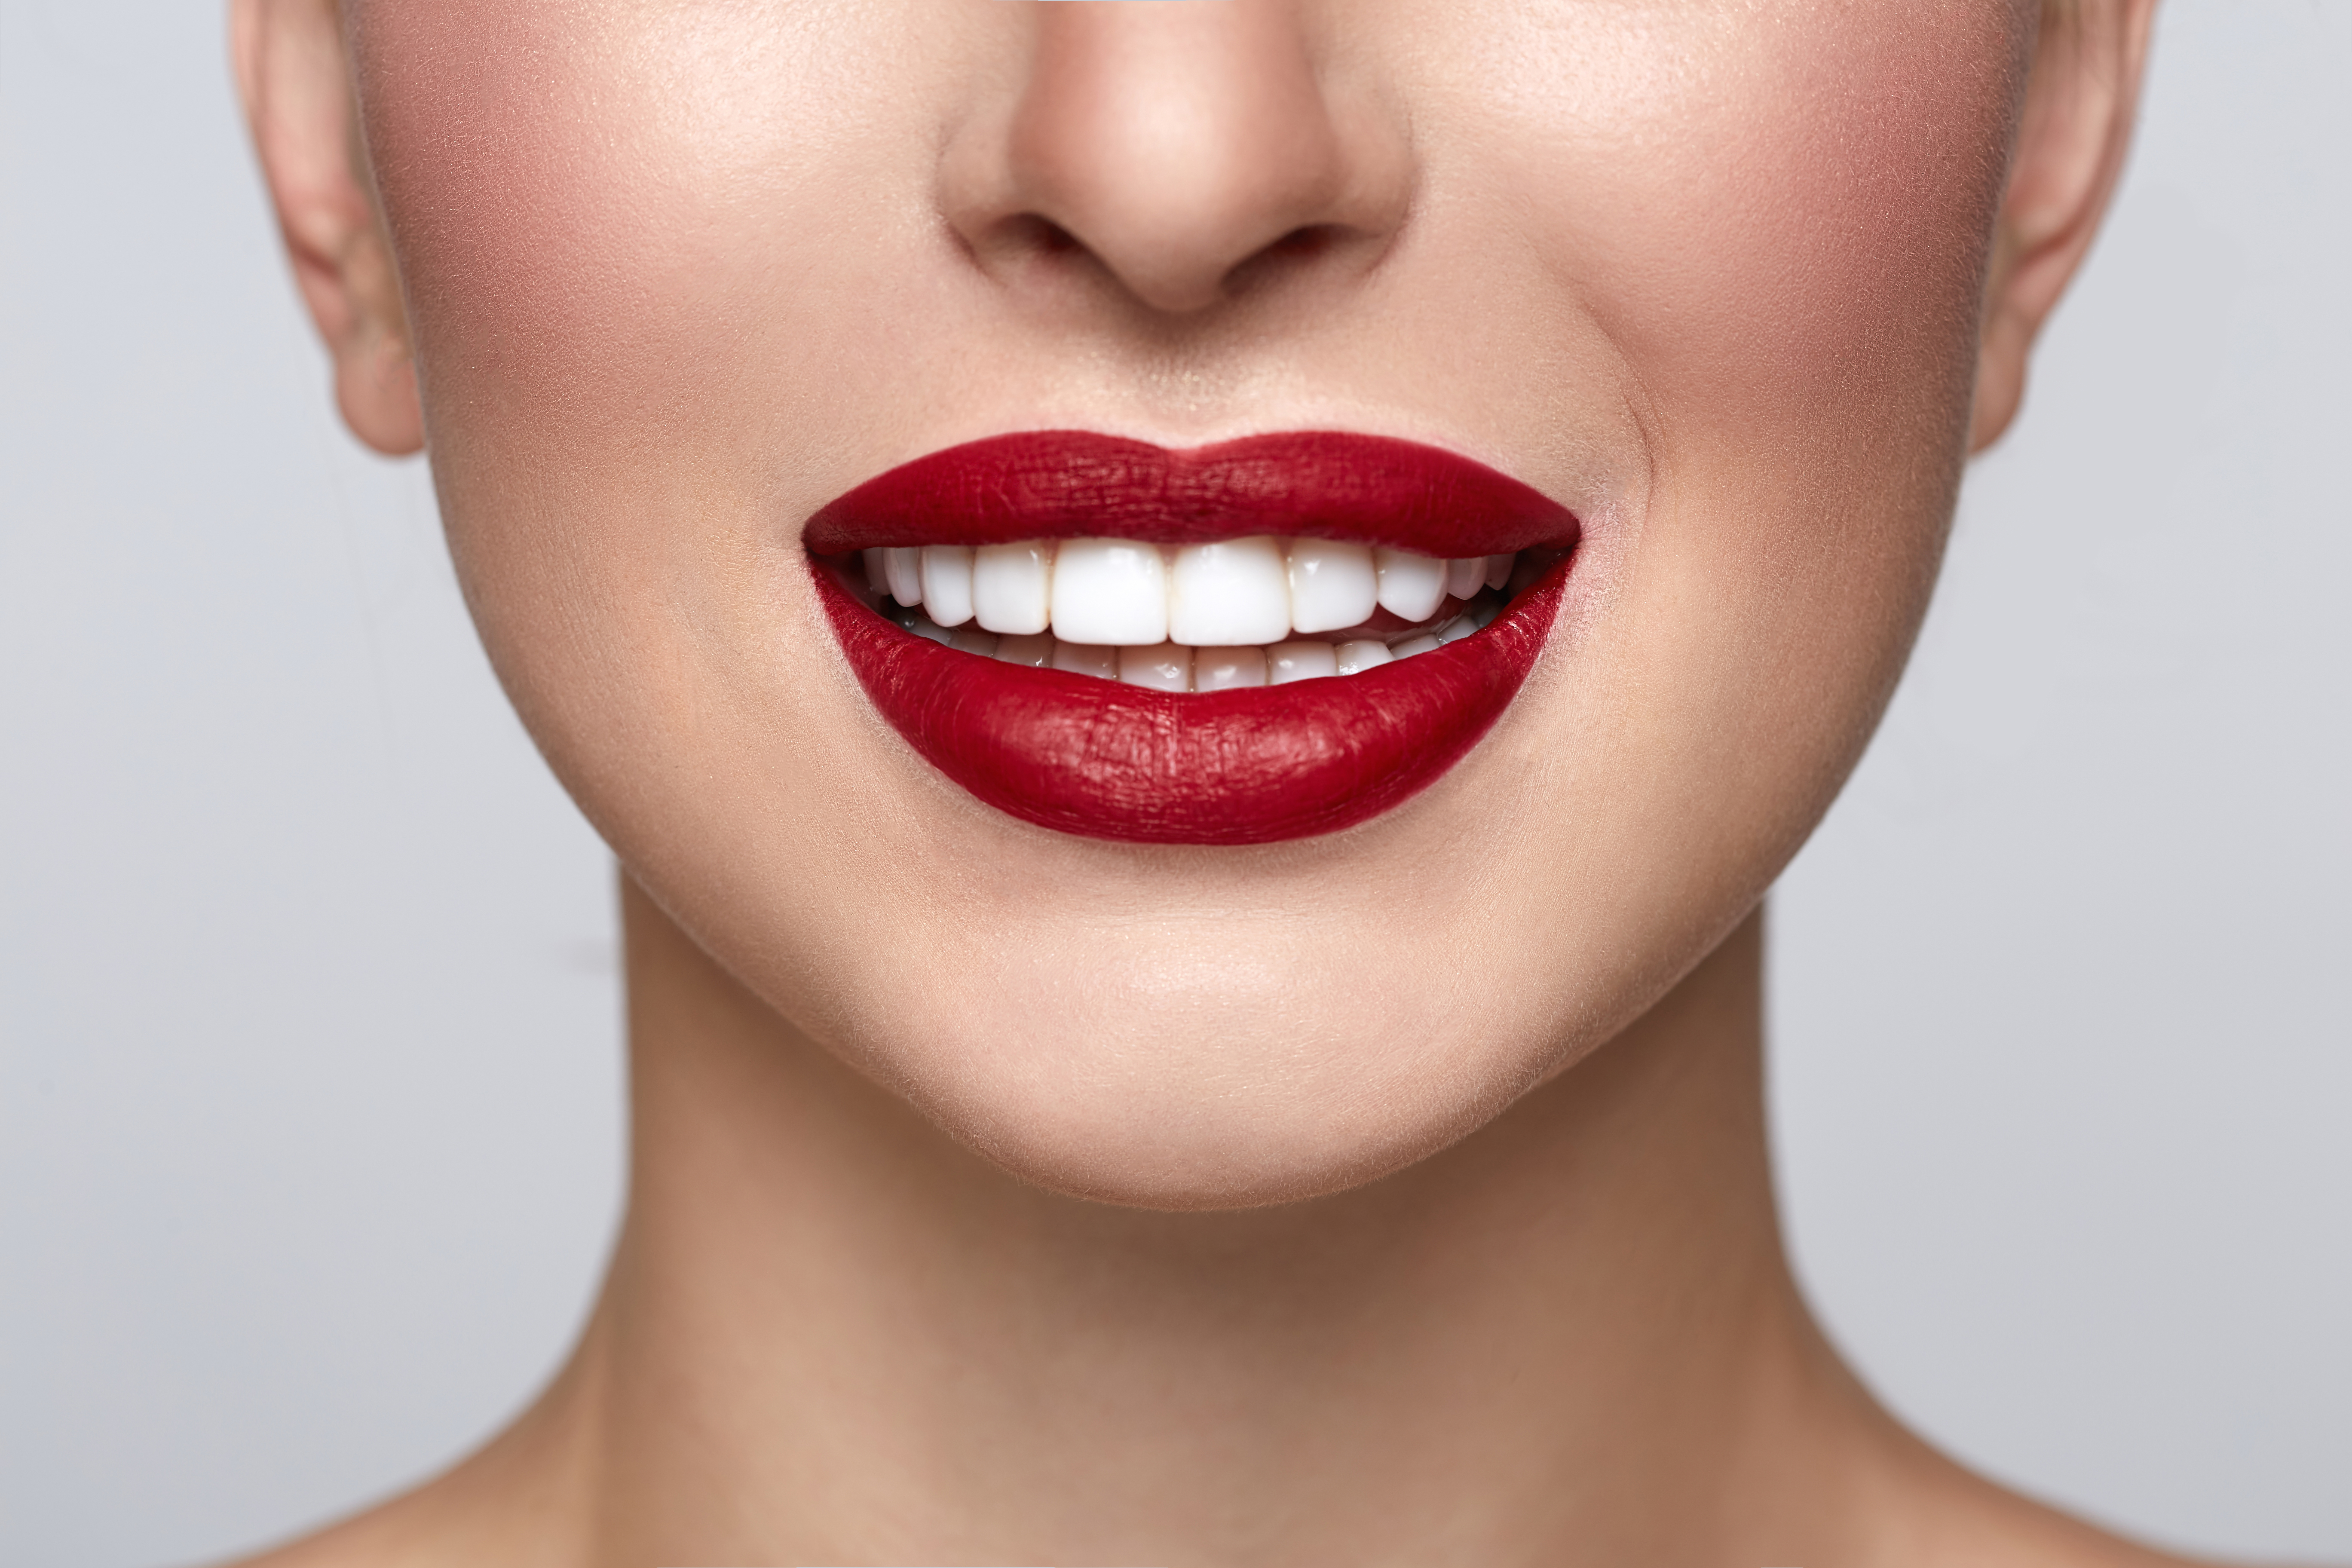 Juvederm Volbella Lip Injections - Concordia Star Med Aesthetics